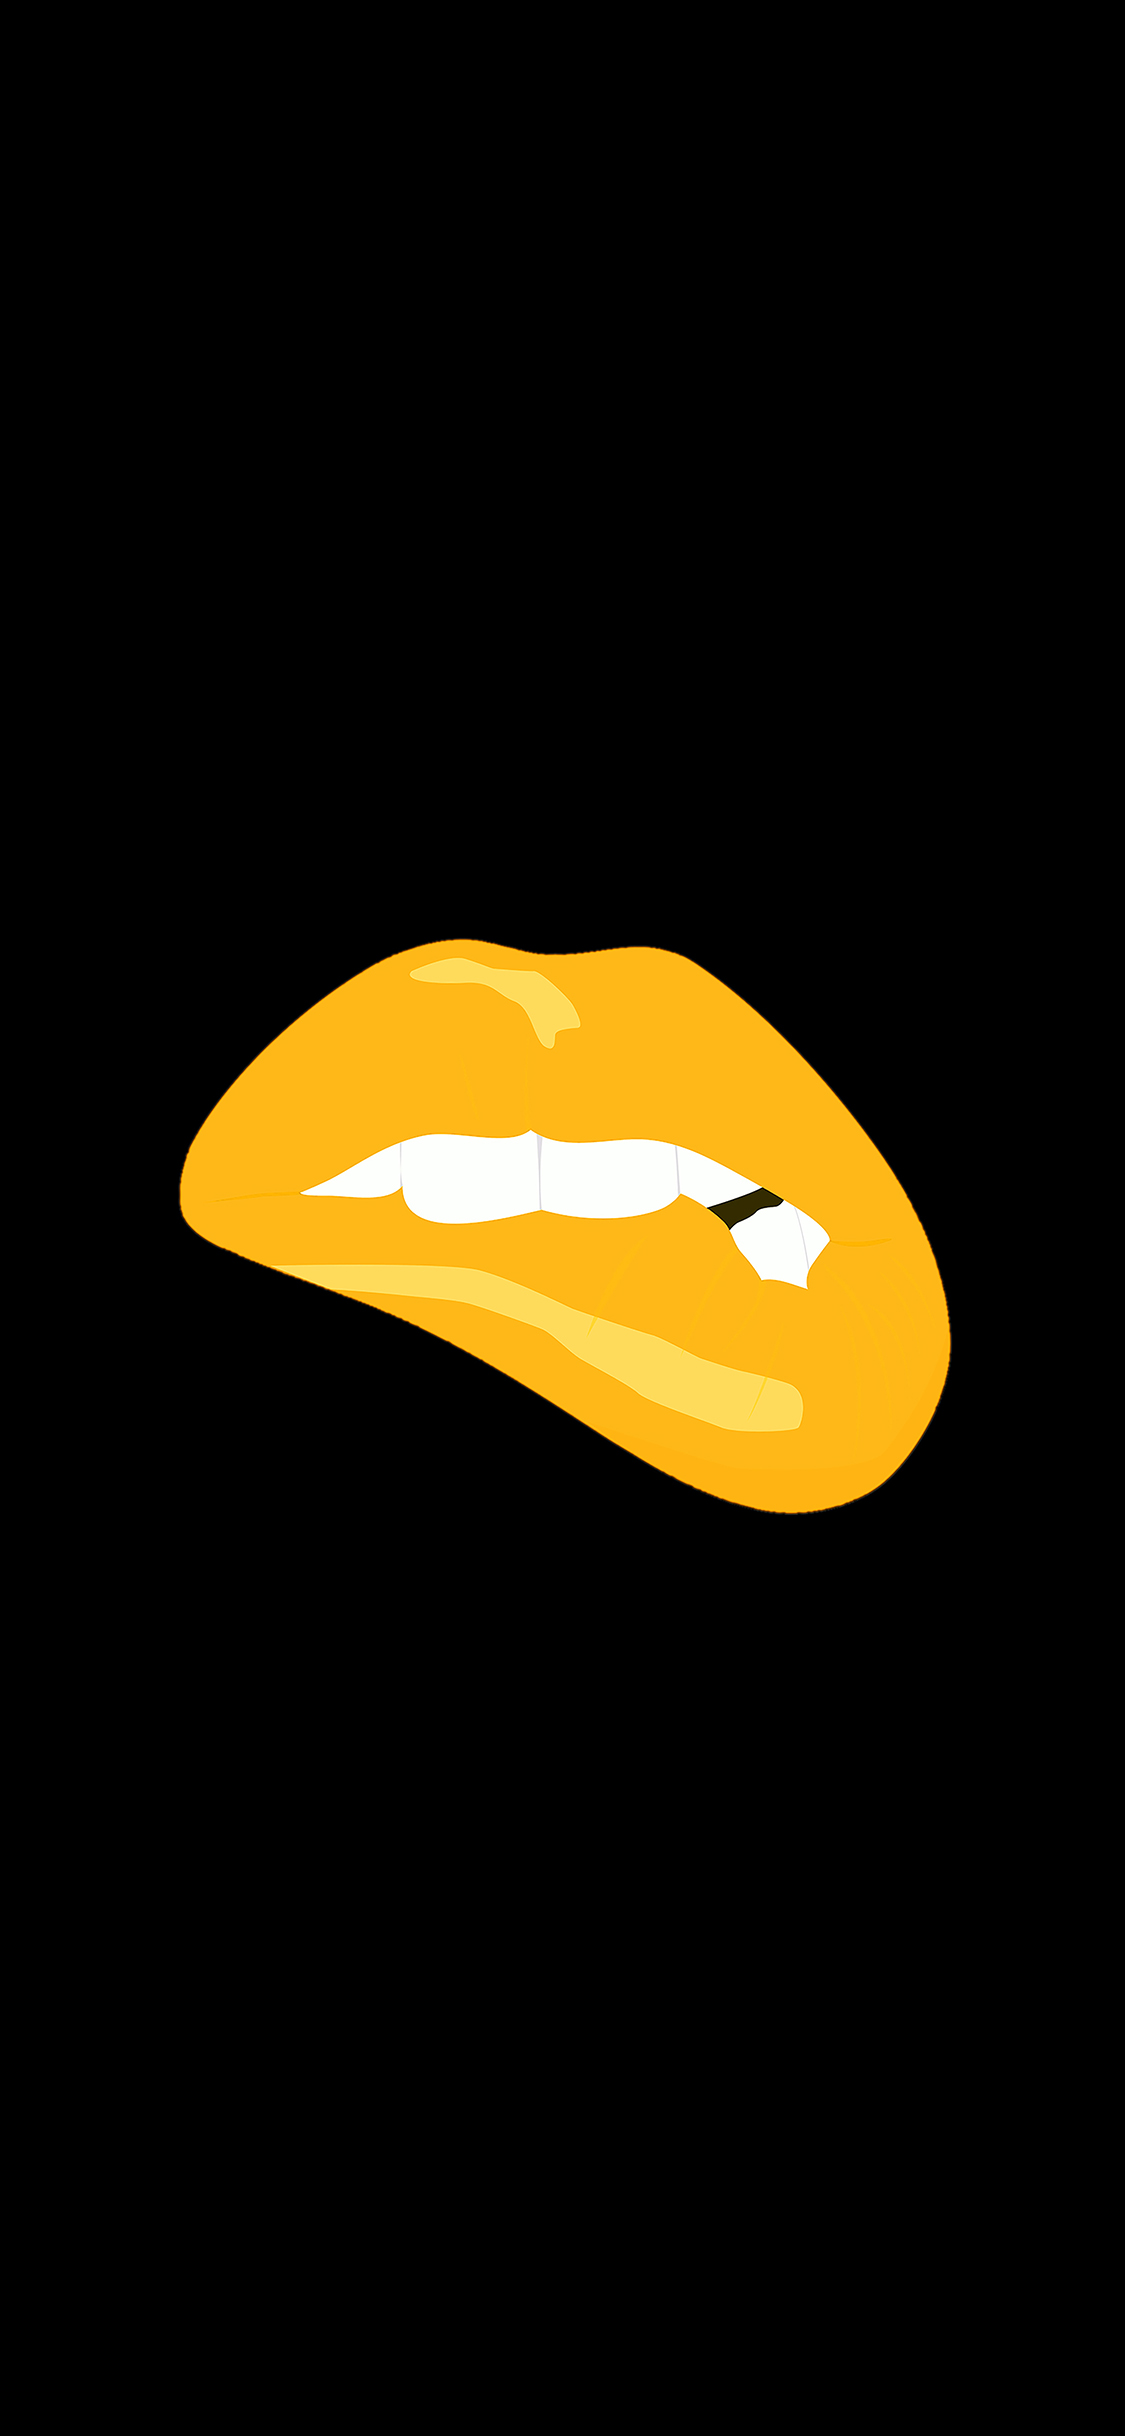 Ae54 Biting Lips Gold Black Background Minimal Art Wallpaper